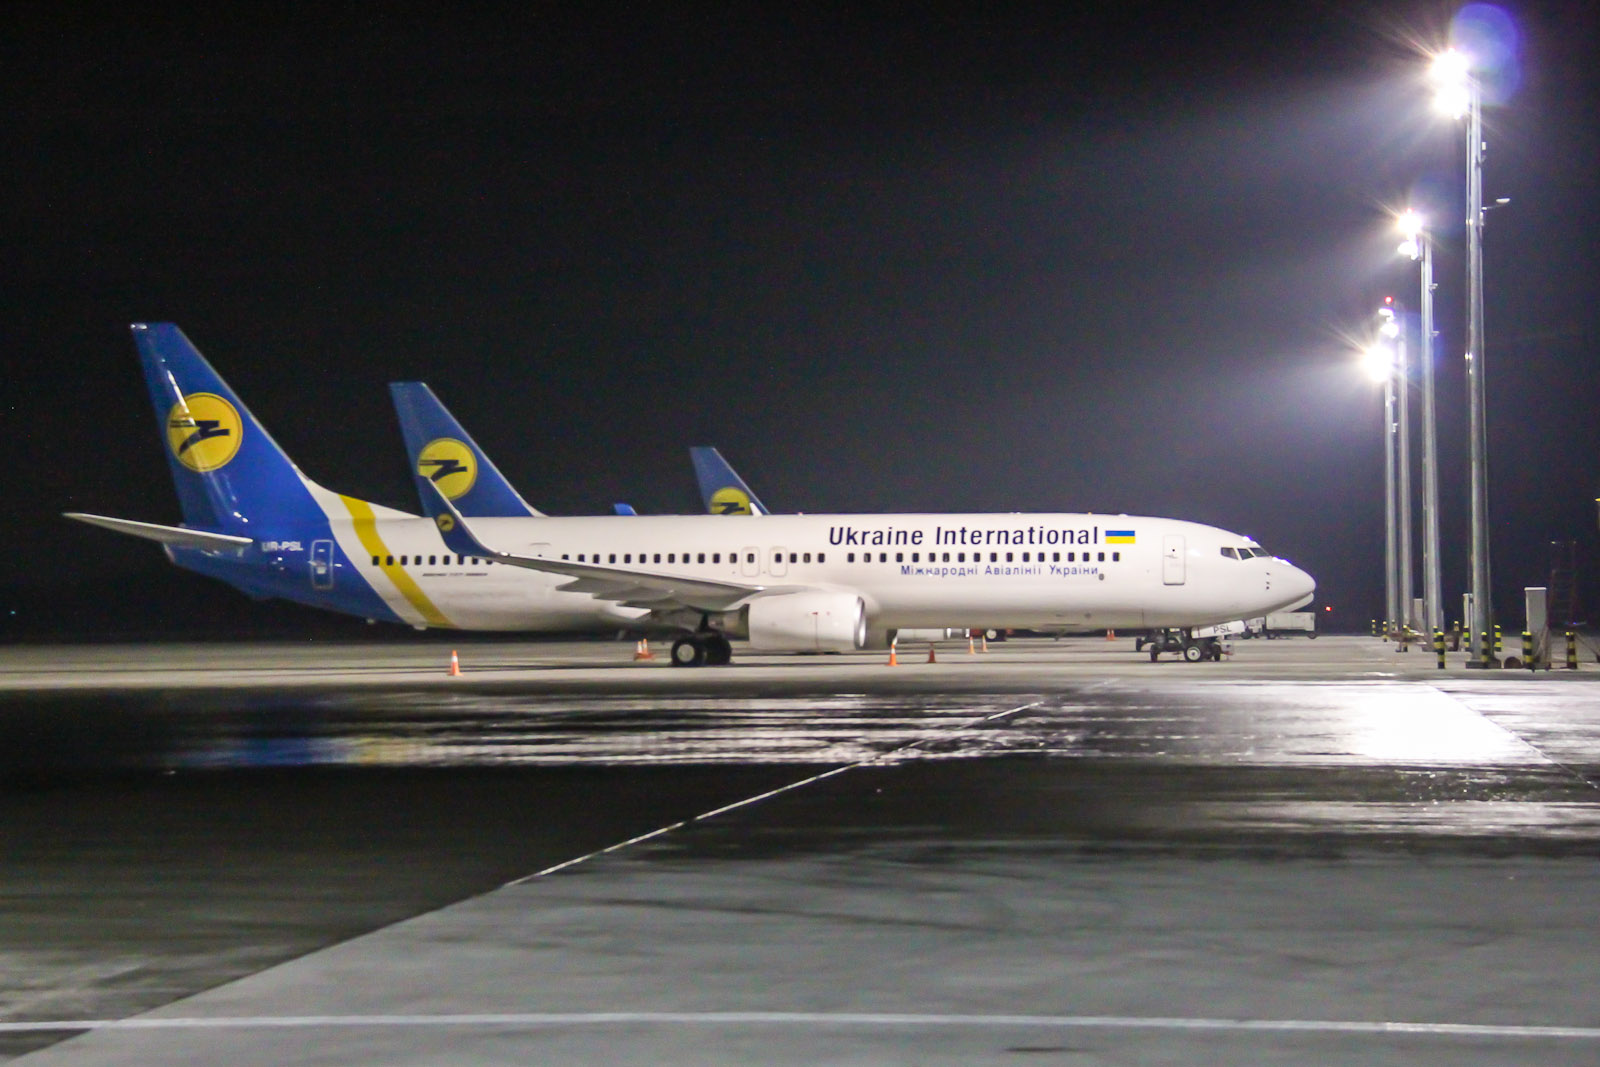 Boeing 737-800 of Ukraine International Airlines